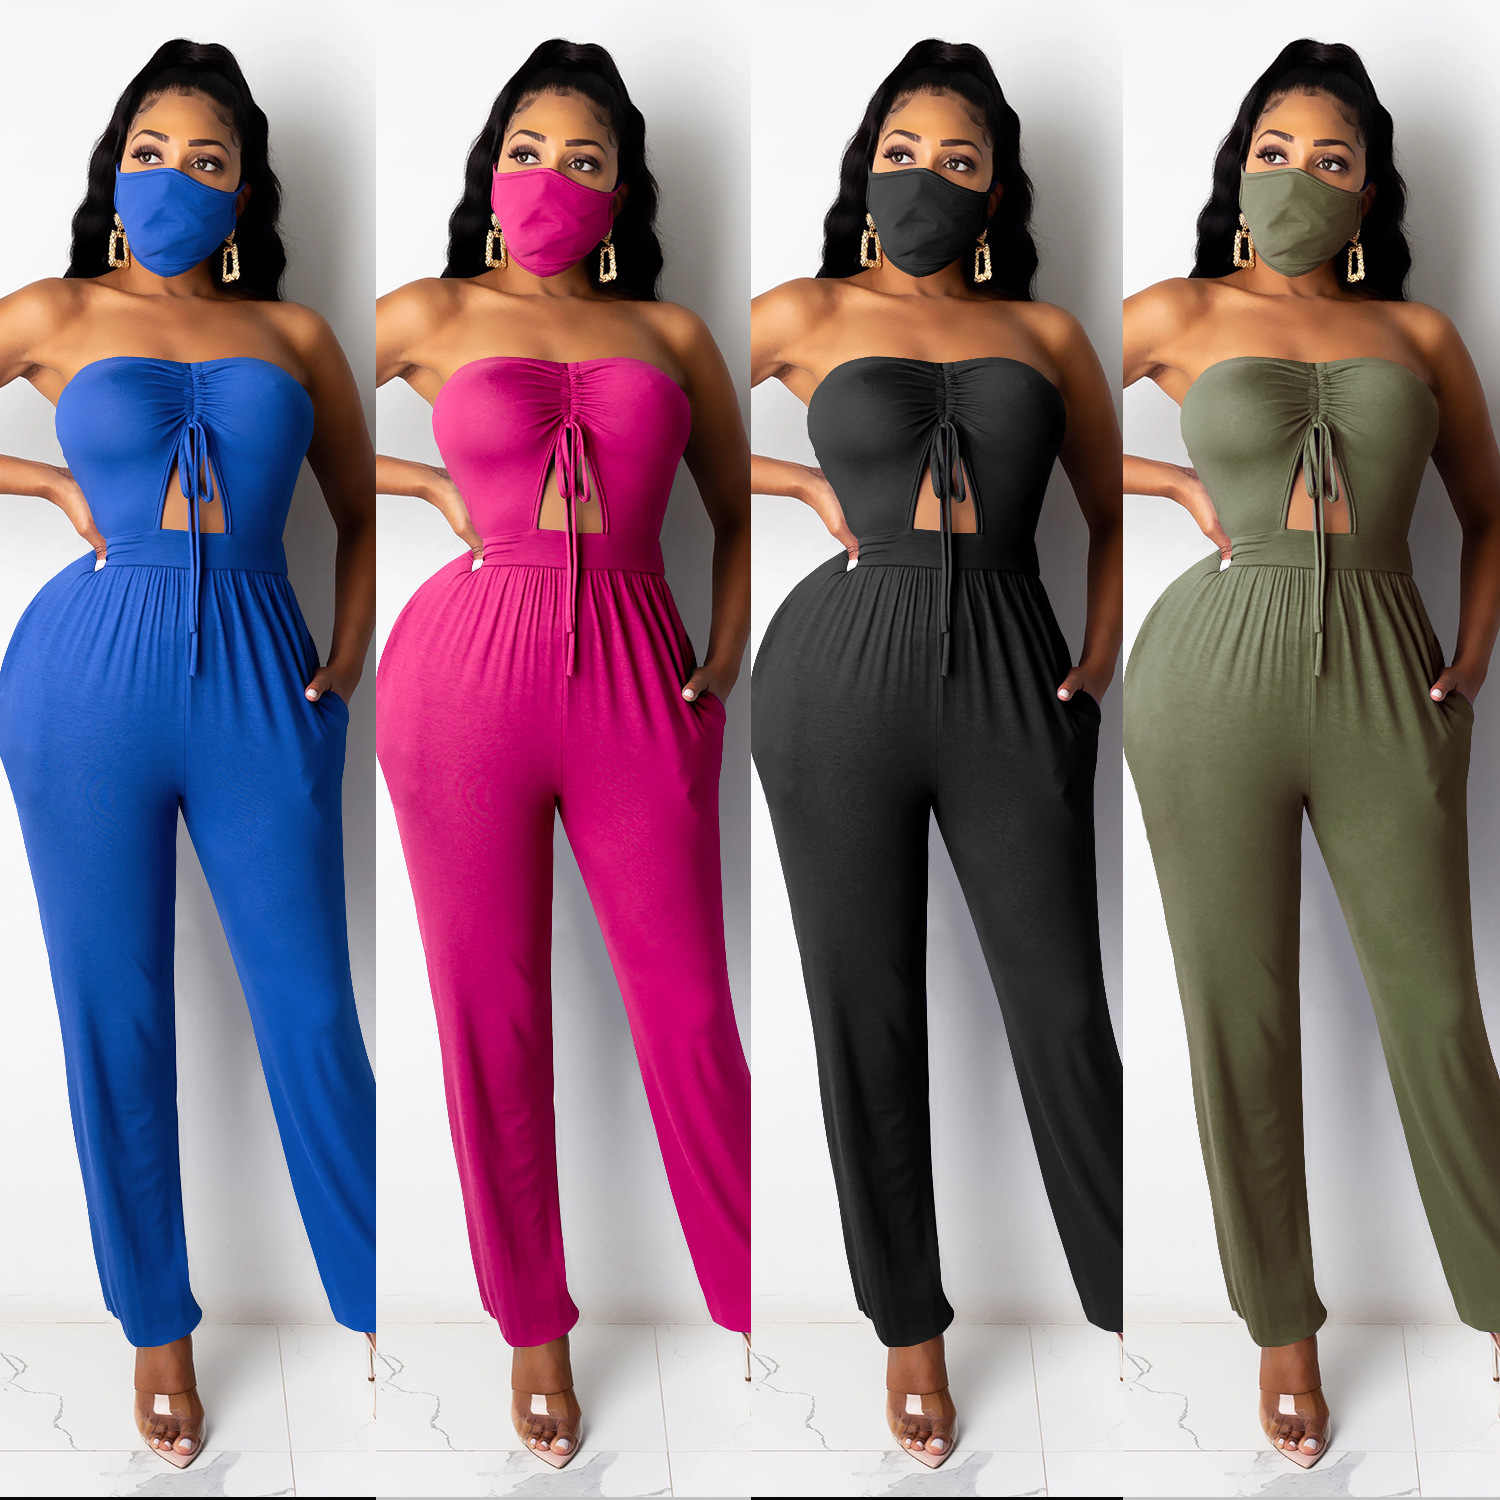 Zoctuo Sexy Jumpsuit Vrouwen Hollow Out Lace Up Rompertjes Strapless Met Masker Backless Jumpsuits Overalls Losse Een Stuk Jumpsuit